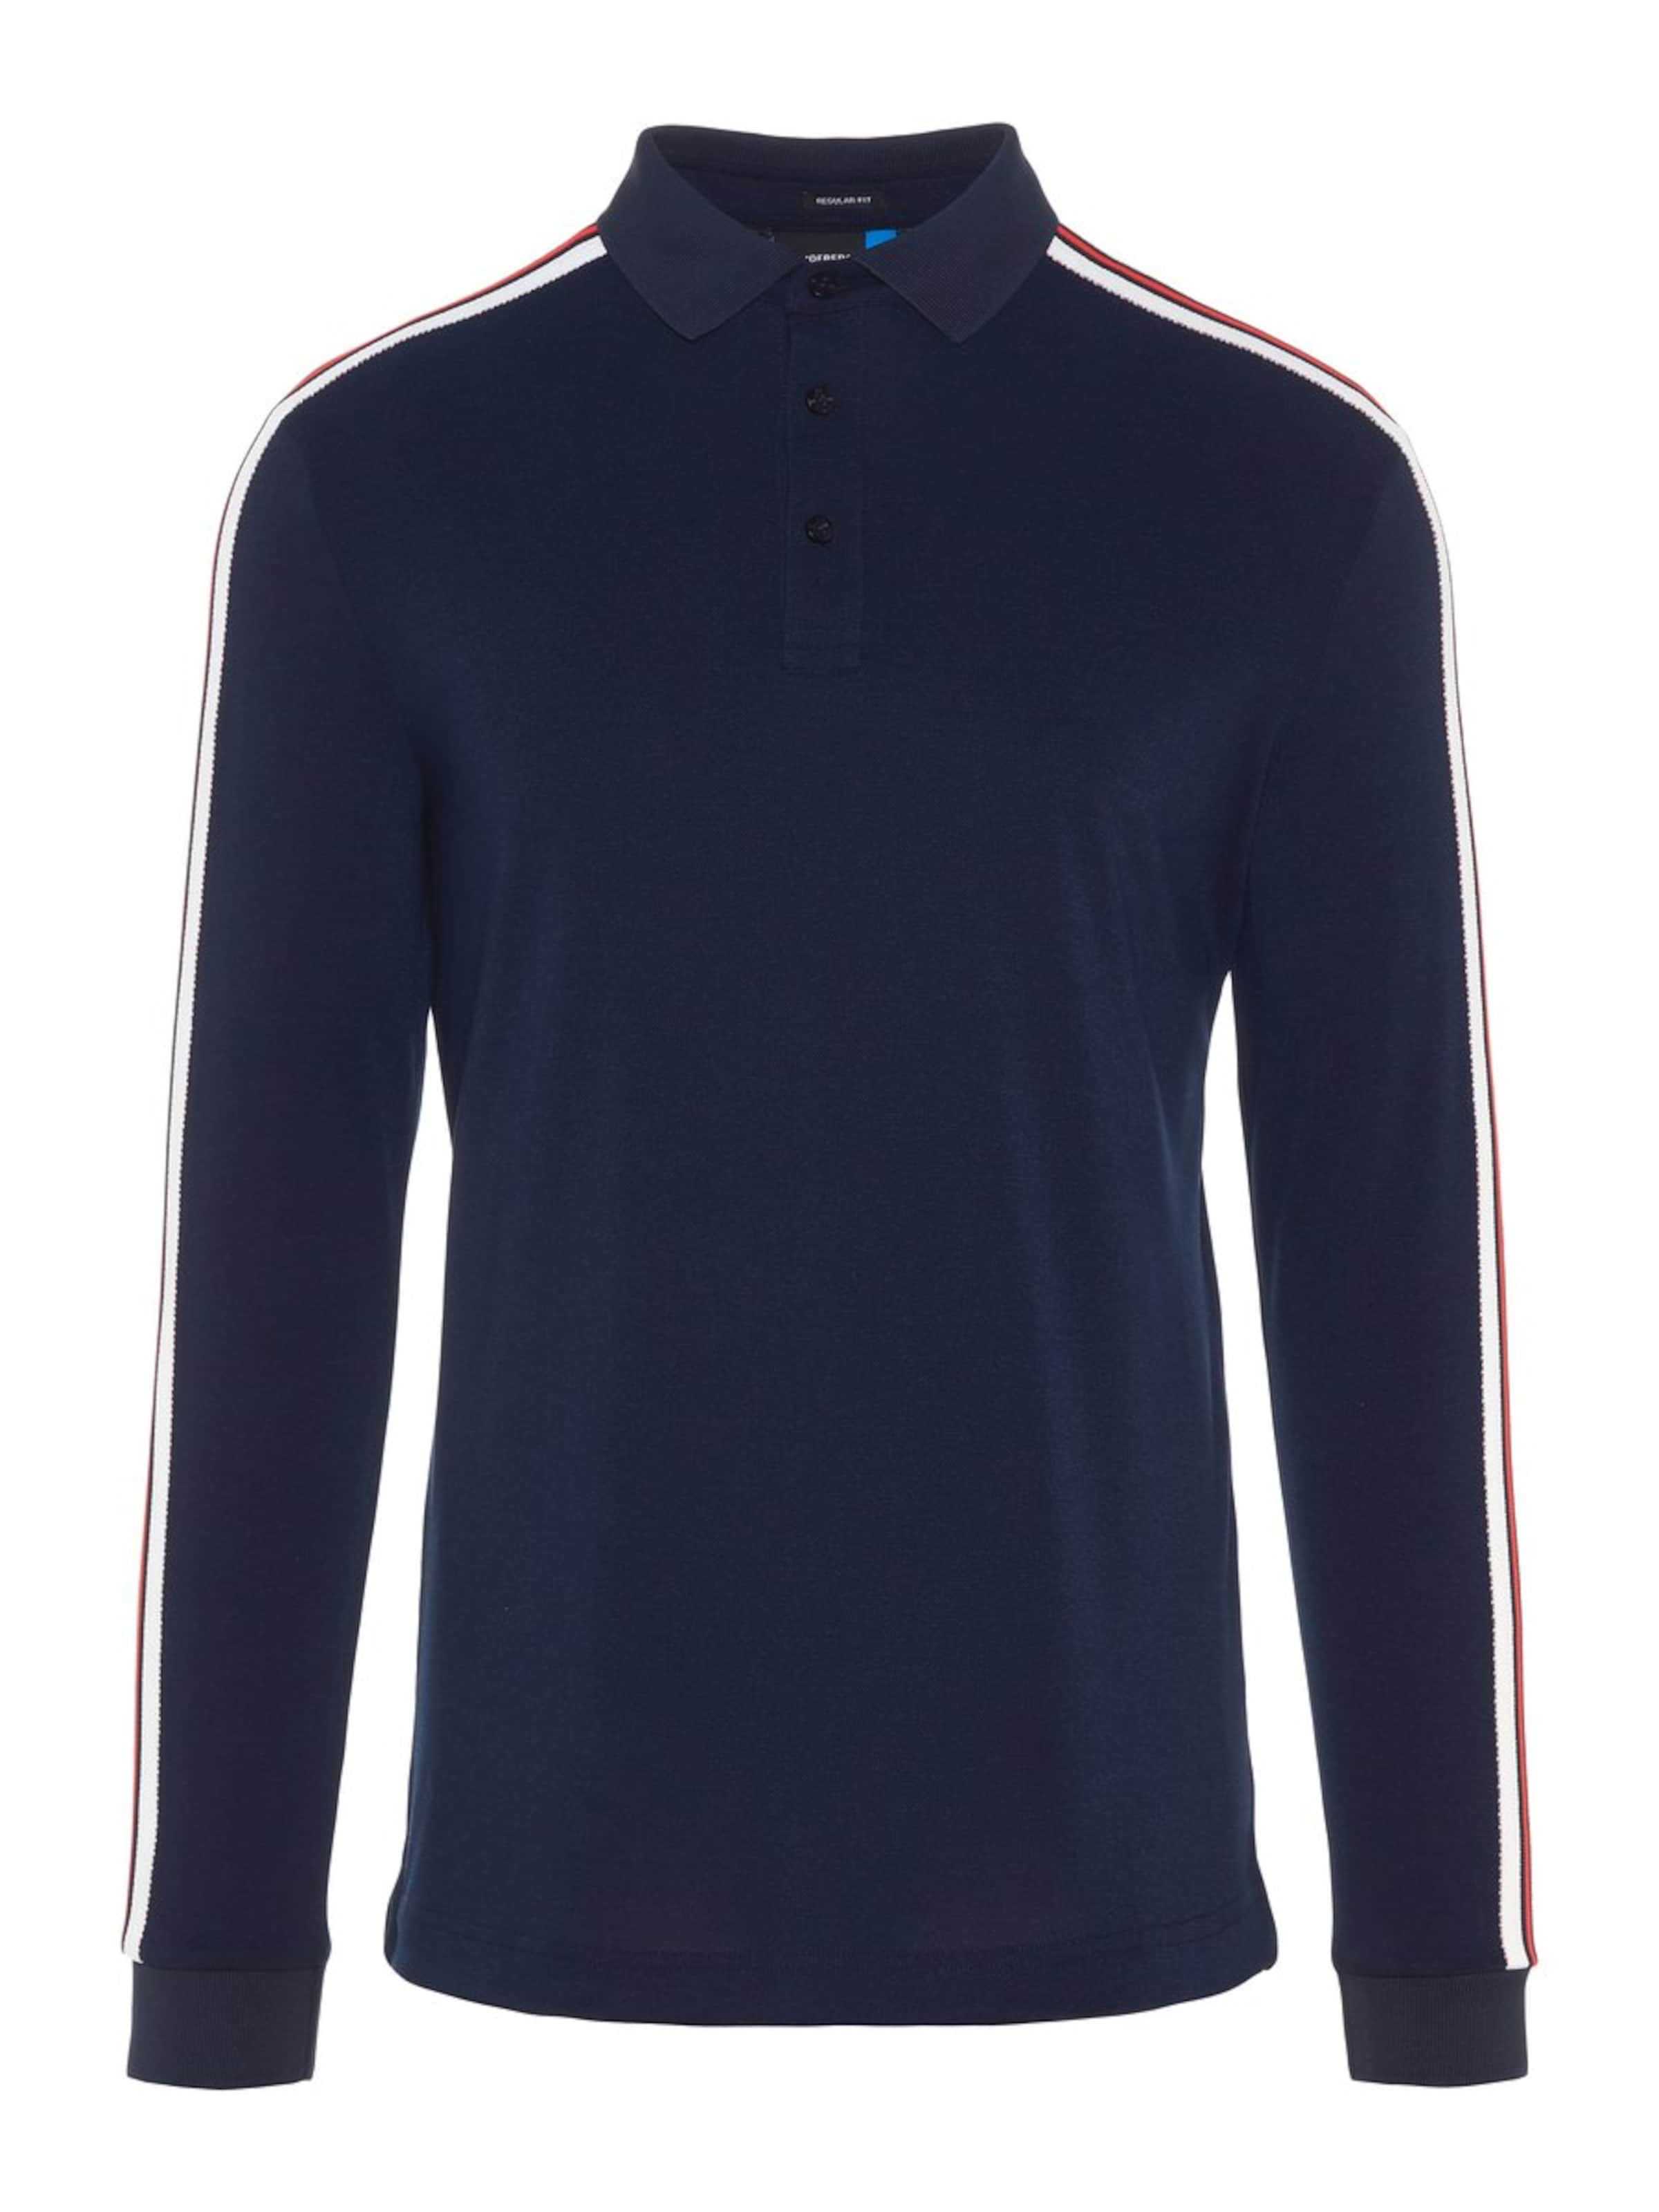 Pique' In J NavyFeuerrot 'cool Weiß lindeberg Shirt eW9IEH2DYb